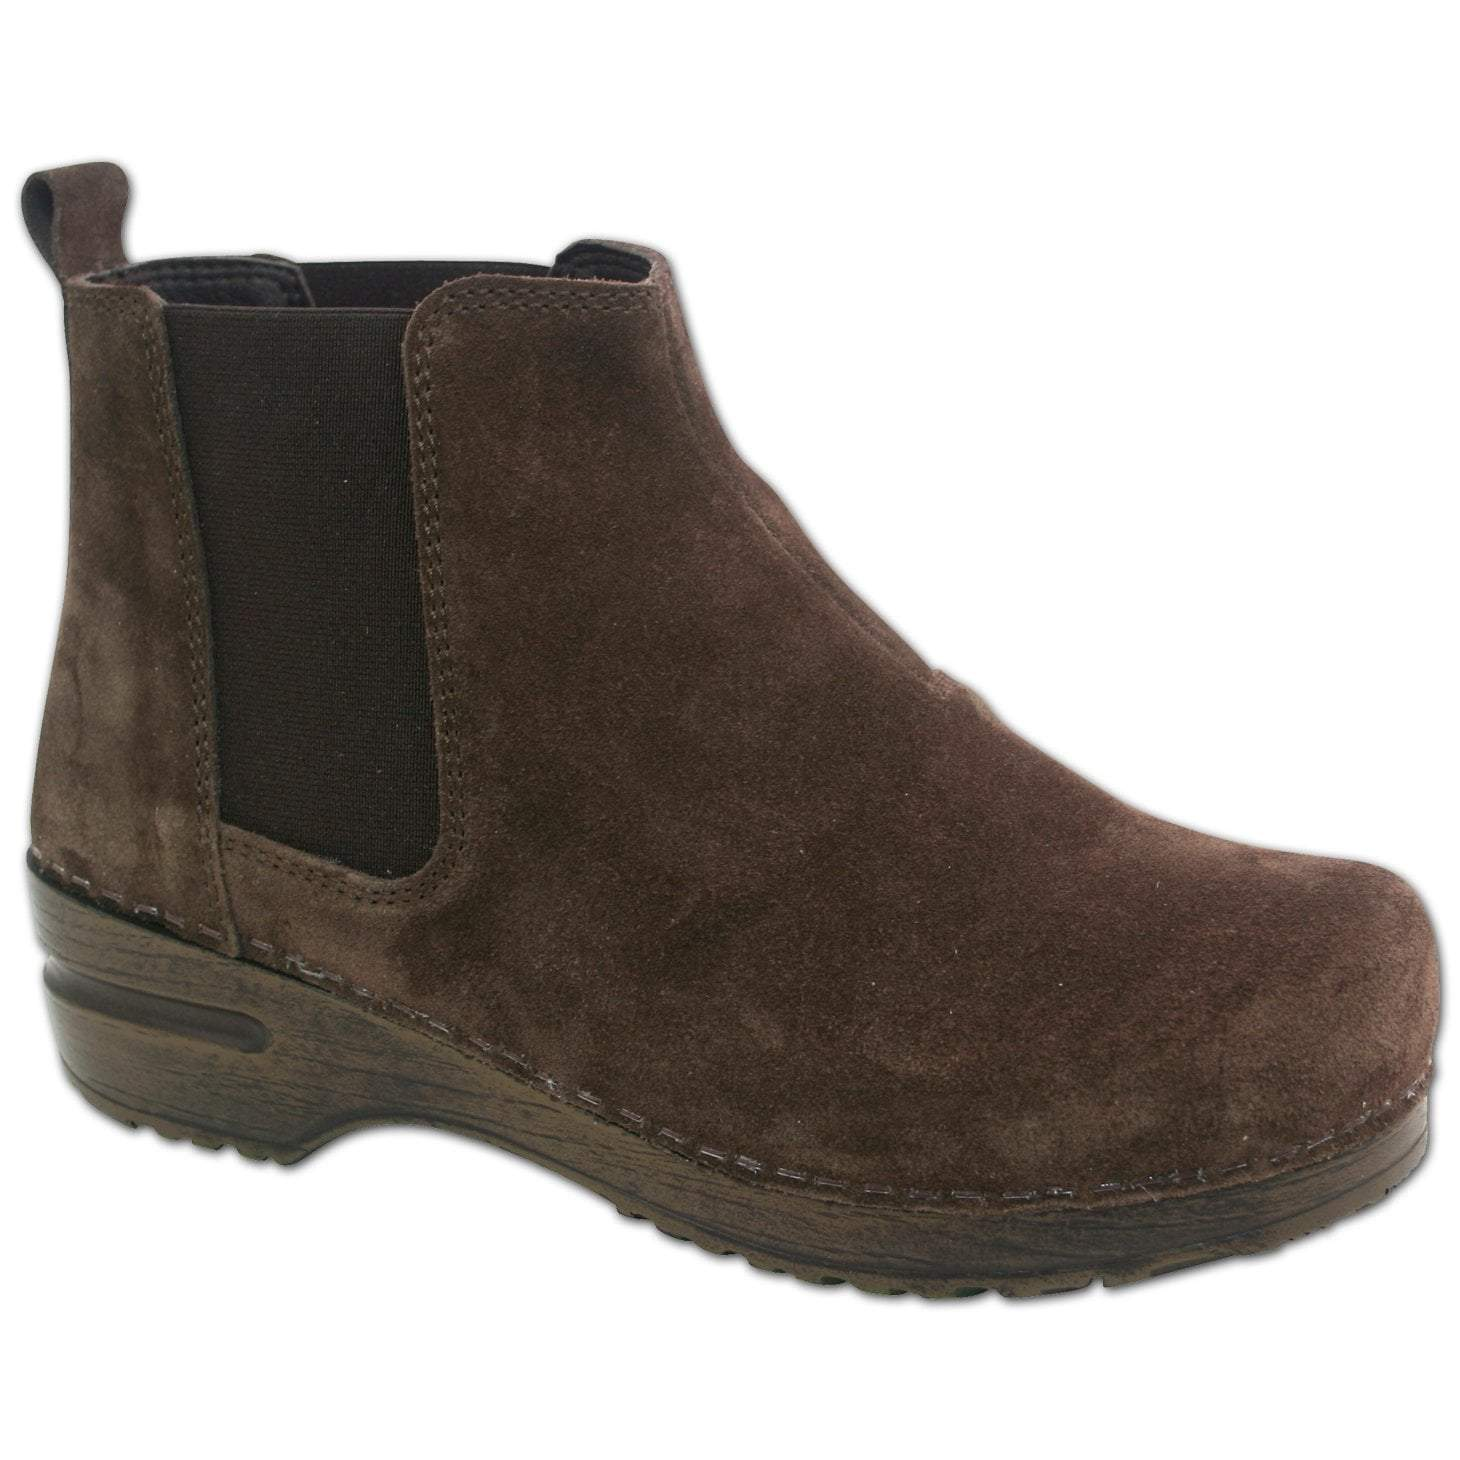 Sanita Vaika Women's in Antique Brown Boot